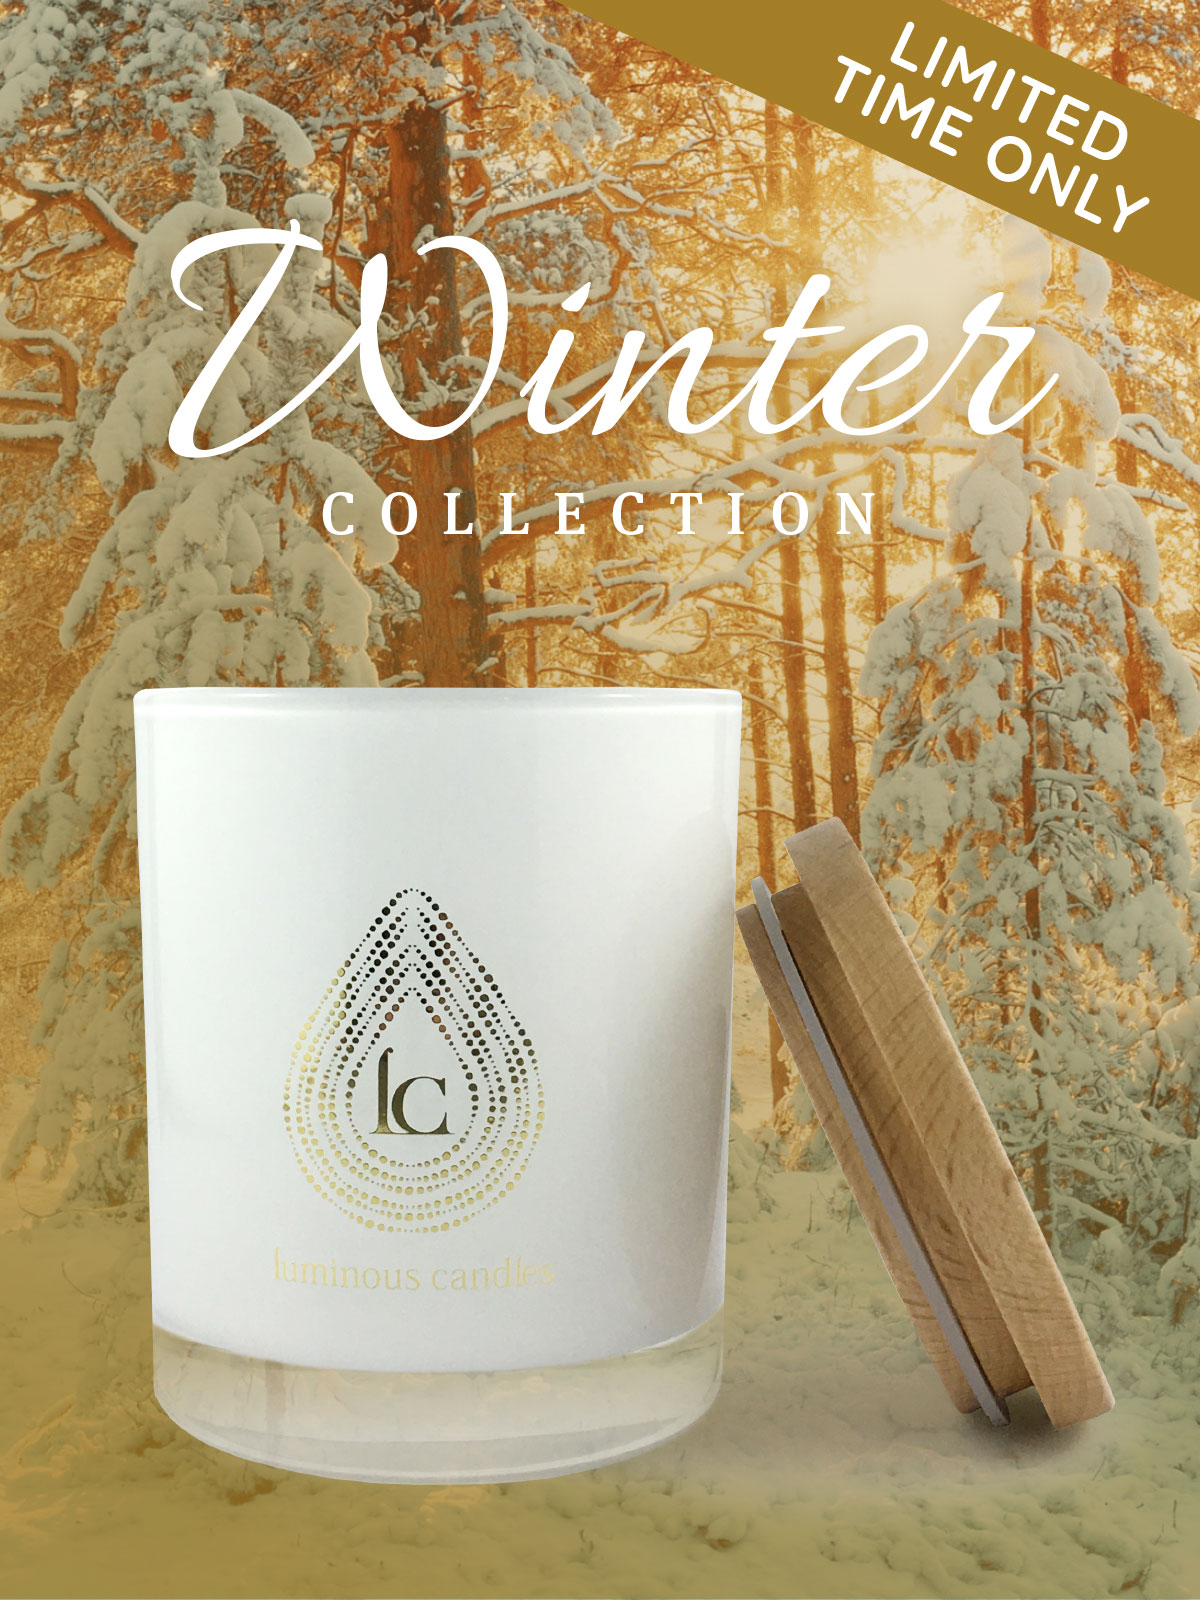 LC-Winter2020-Collection-Product-Image-1